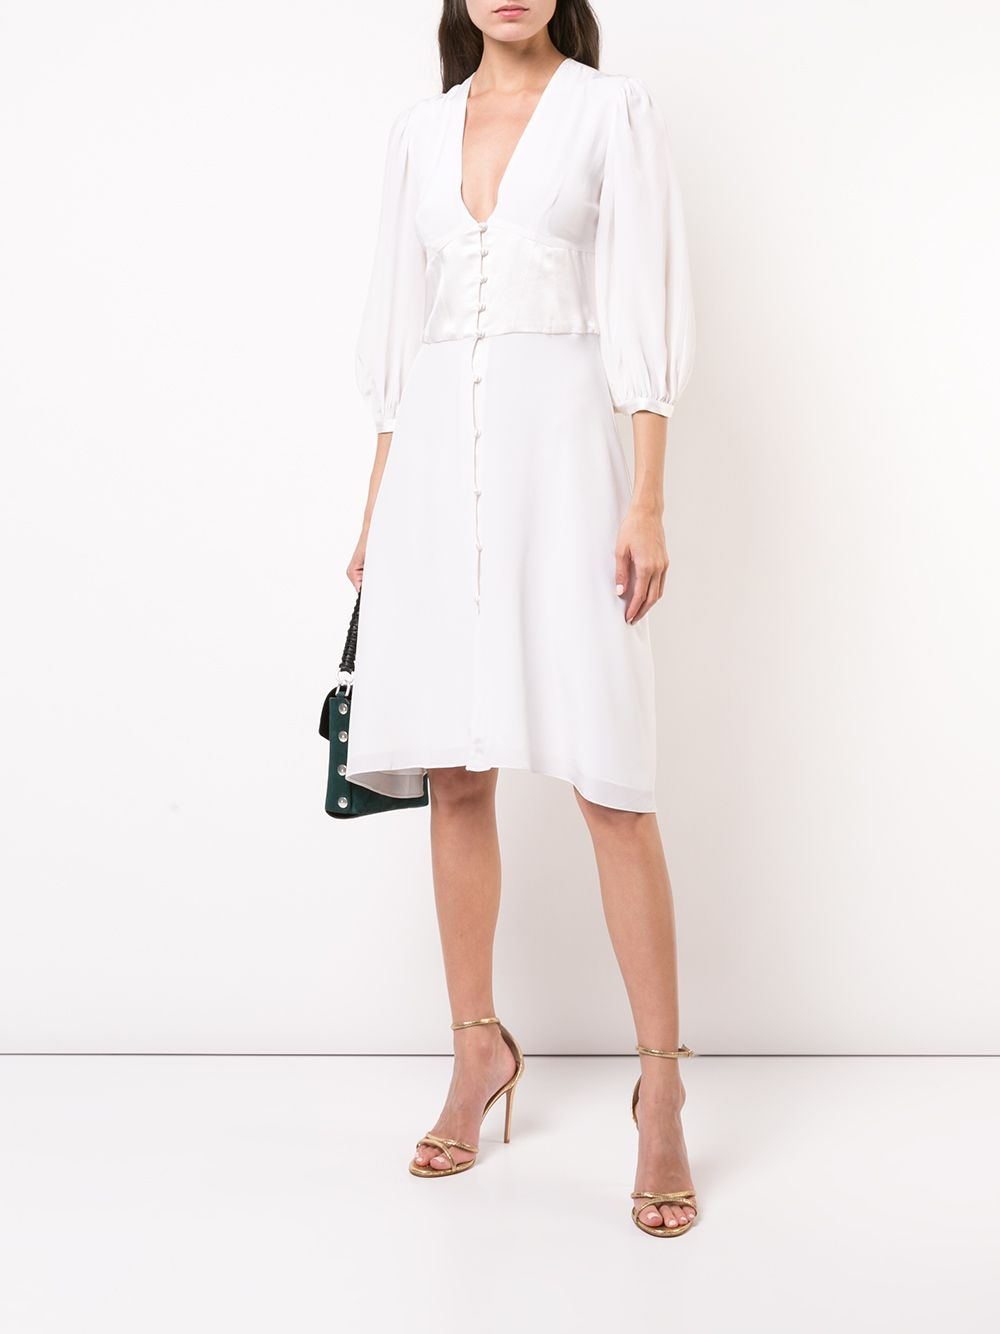 Kaia Gerber wearing a Sleek shiny white Fleur Du Mal midi dress with a satin fabric, elbow length sleeves, button front, a V-neck and flared hem